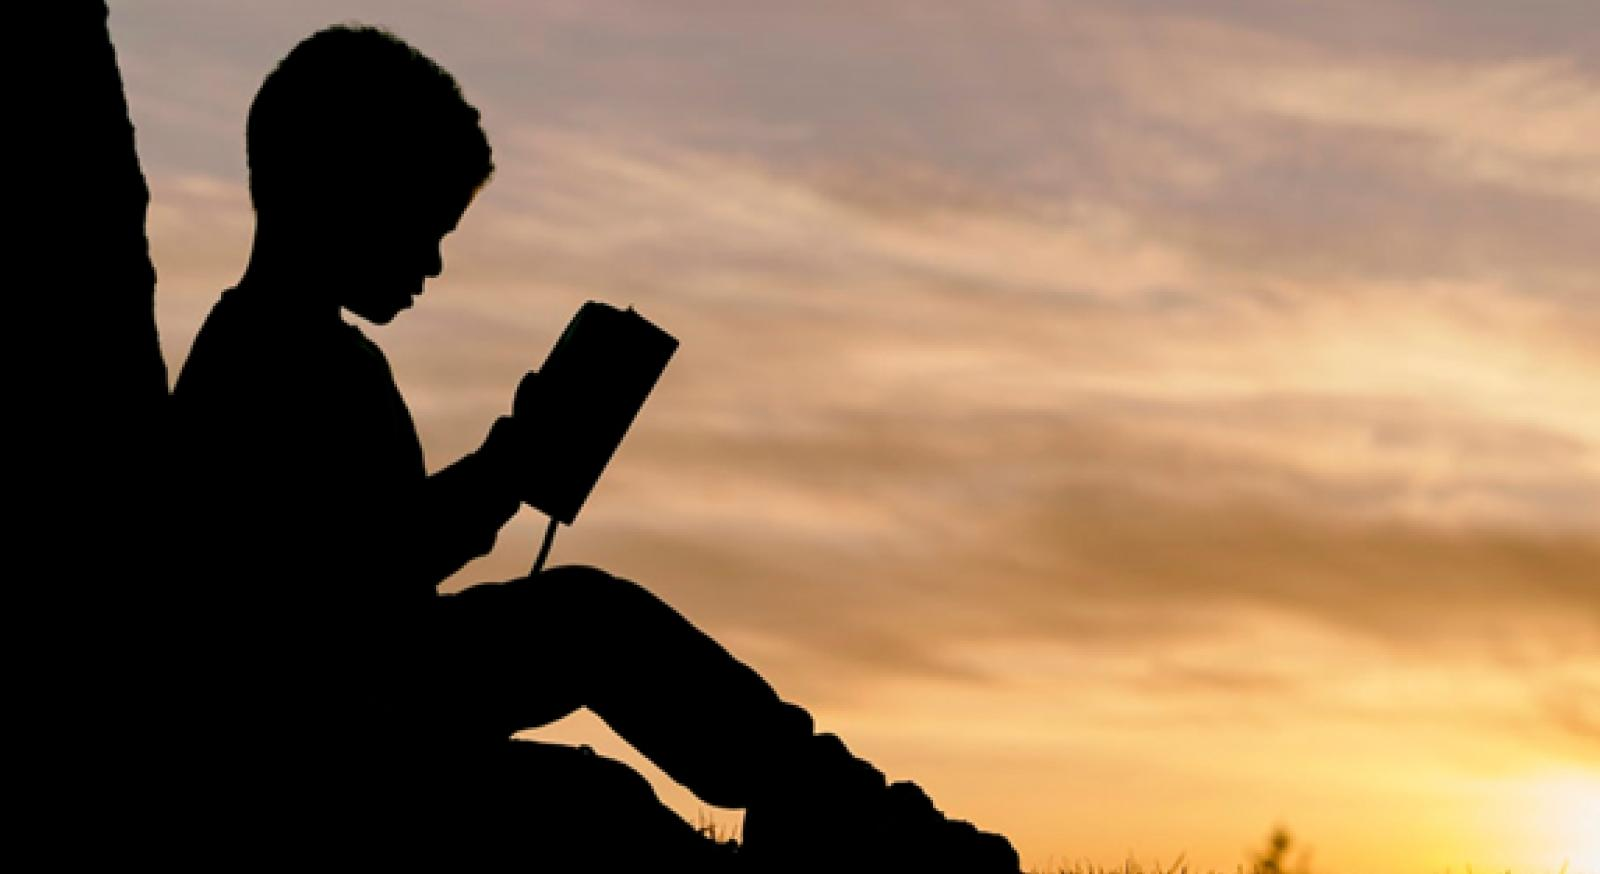 silhouette of child sitting behind tree during sunset reading